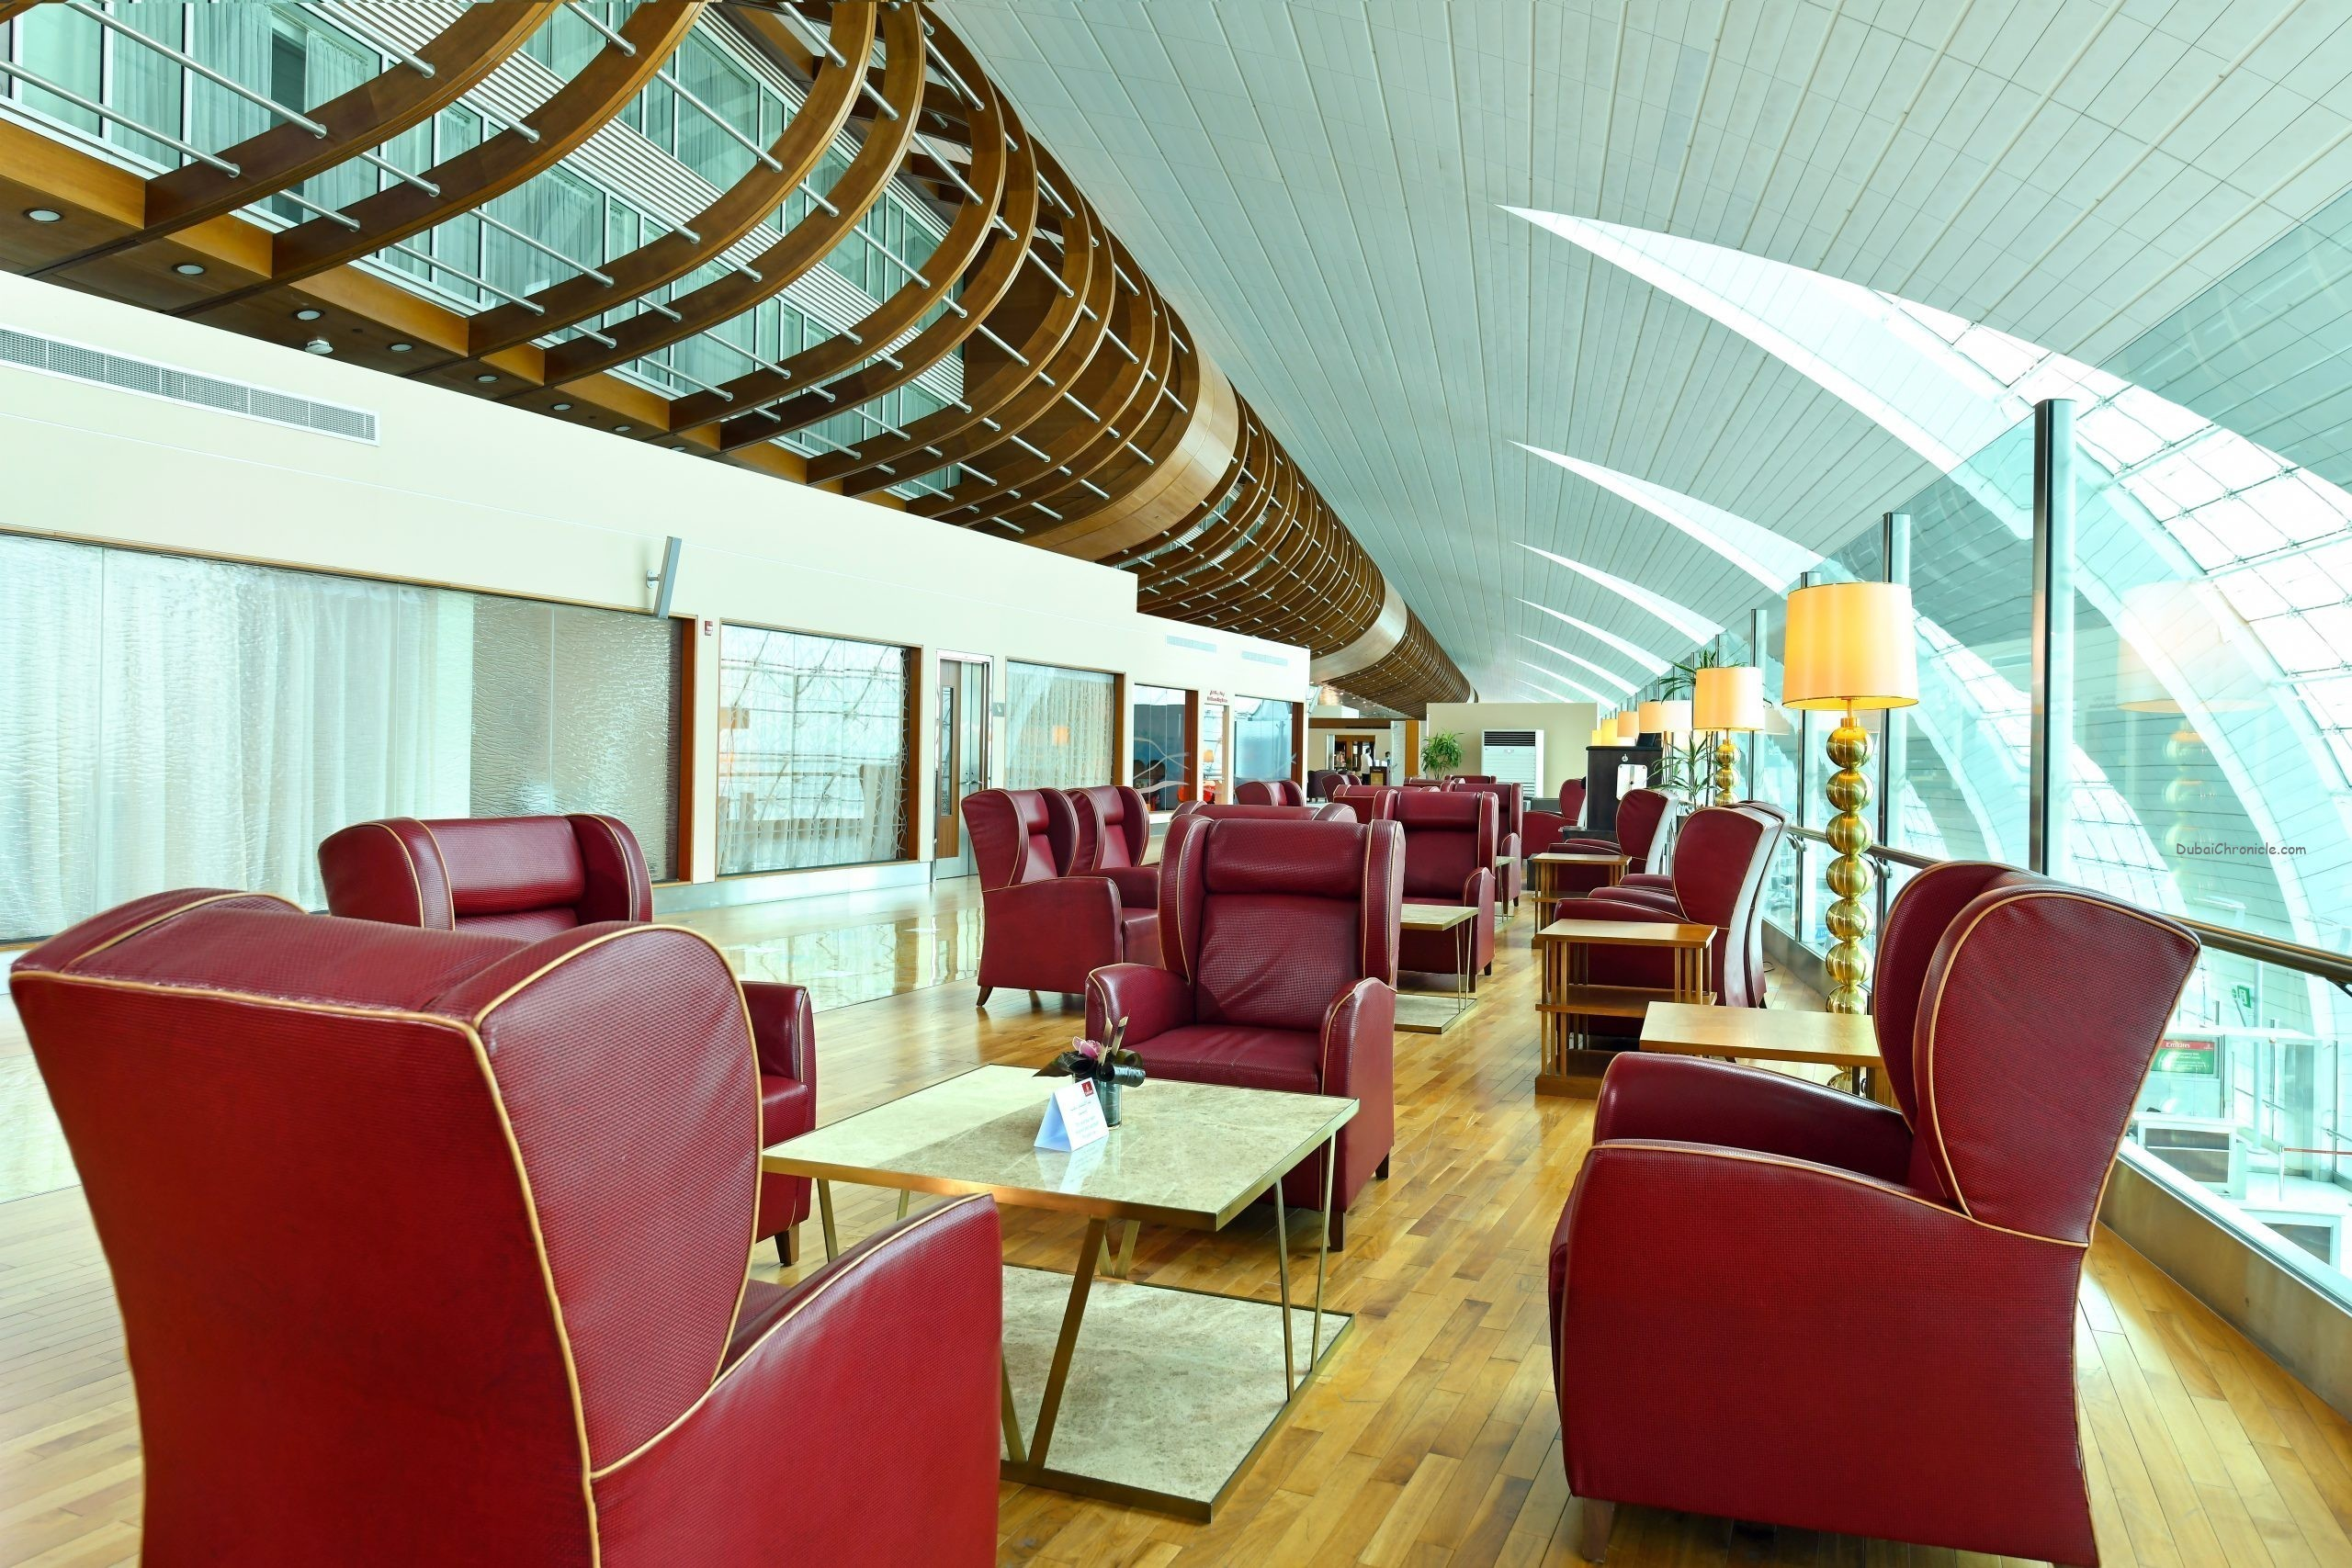 Emirates has re-opened its dedicated First Class Lounge at Dubai International Concourse B, to serve the growing volume of premium customers.